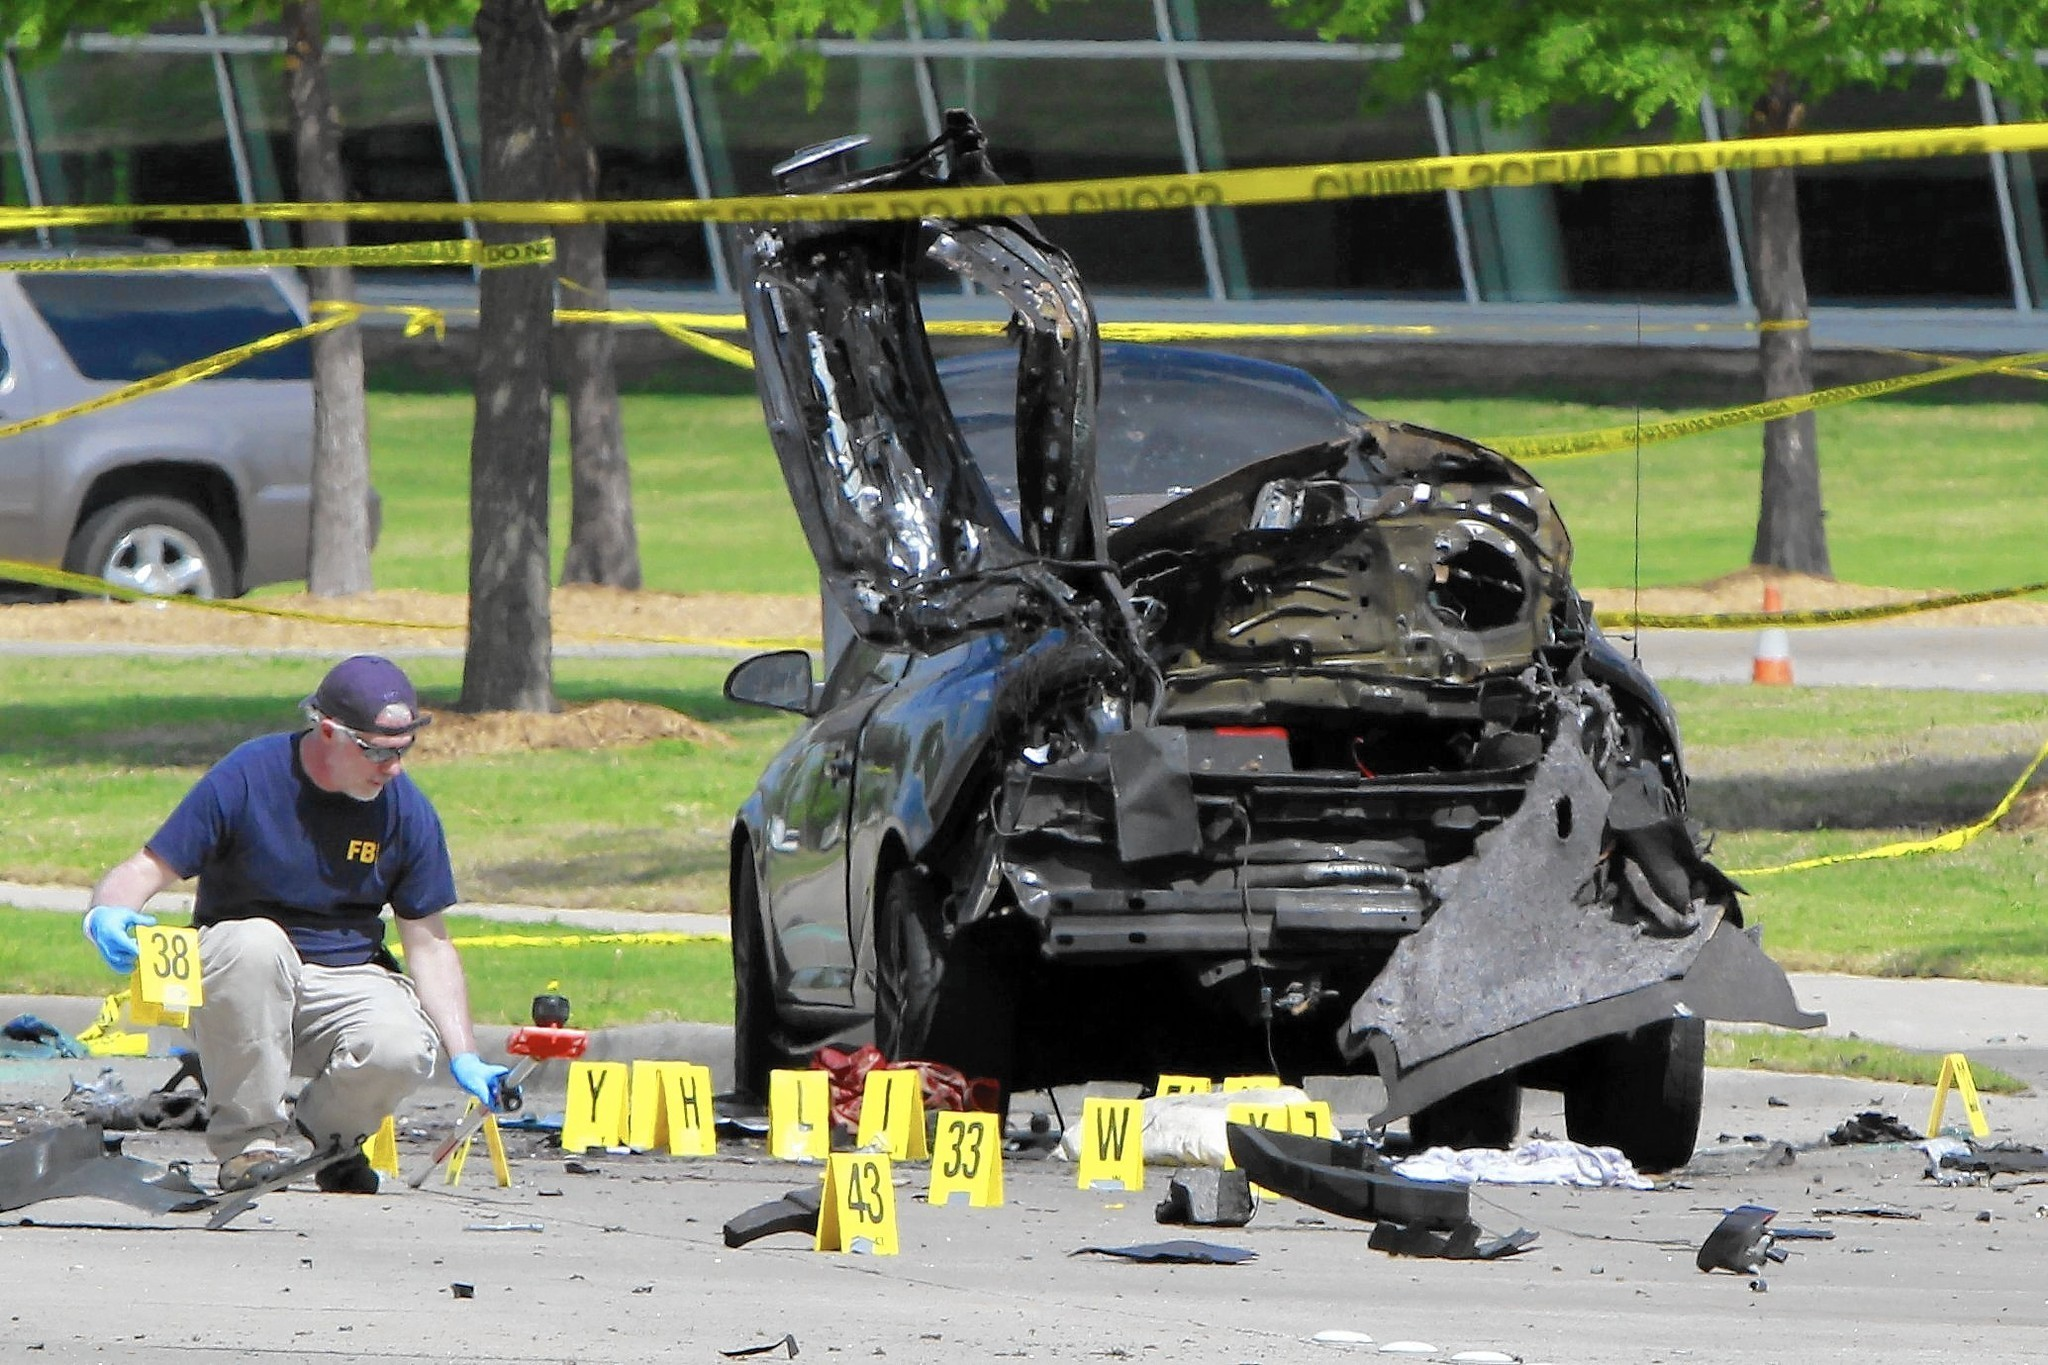 terrorist attack on american soil essay It's long past time to start understanding the giant mass shootings that have become part of the new-normal fabric of life in the united states as terrorist attacks on the us populace.